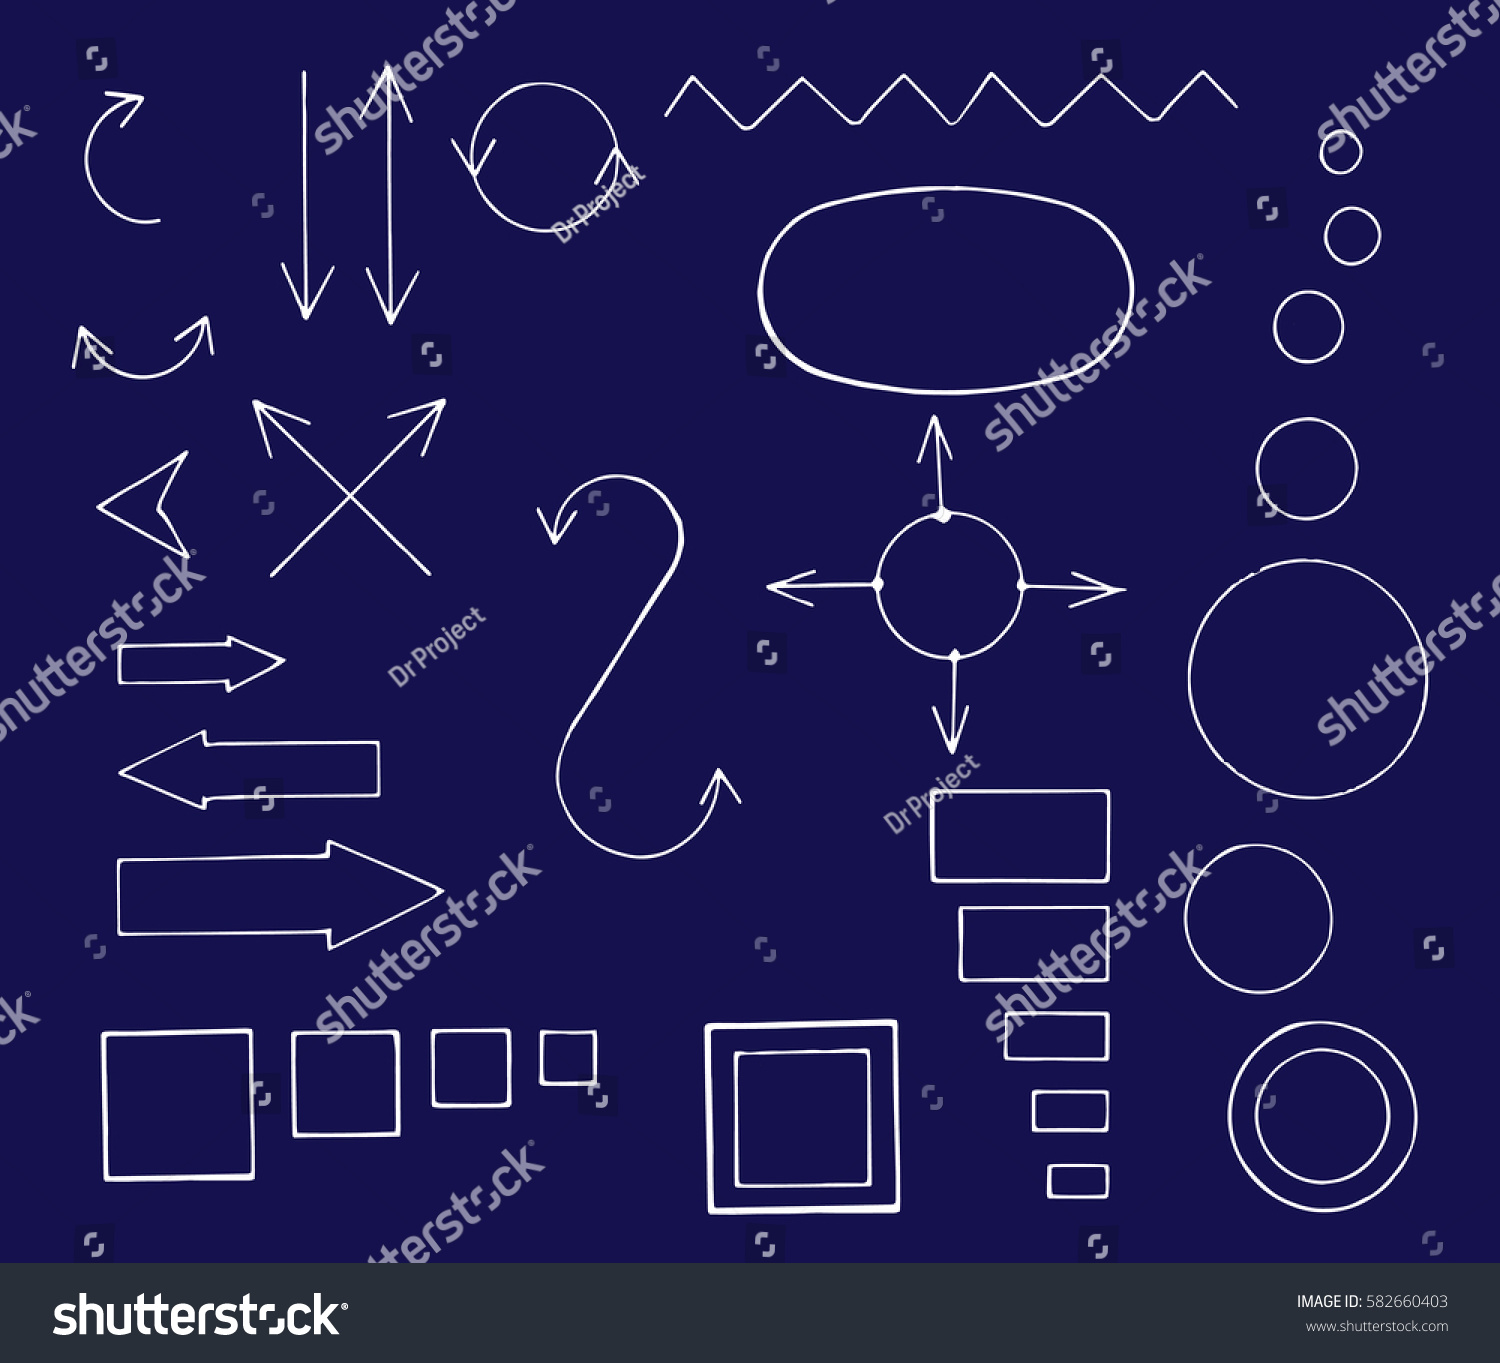 Architectural Engineering Signs Symbols Vector Hand Stock Photo